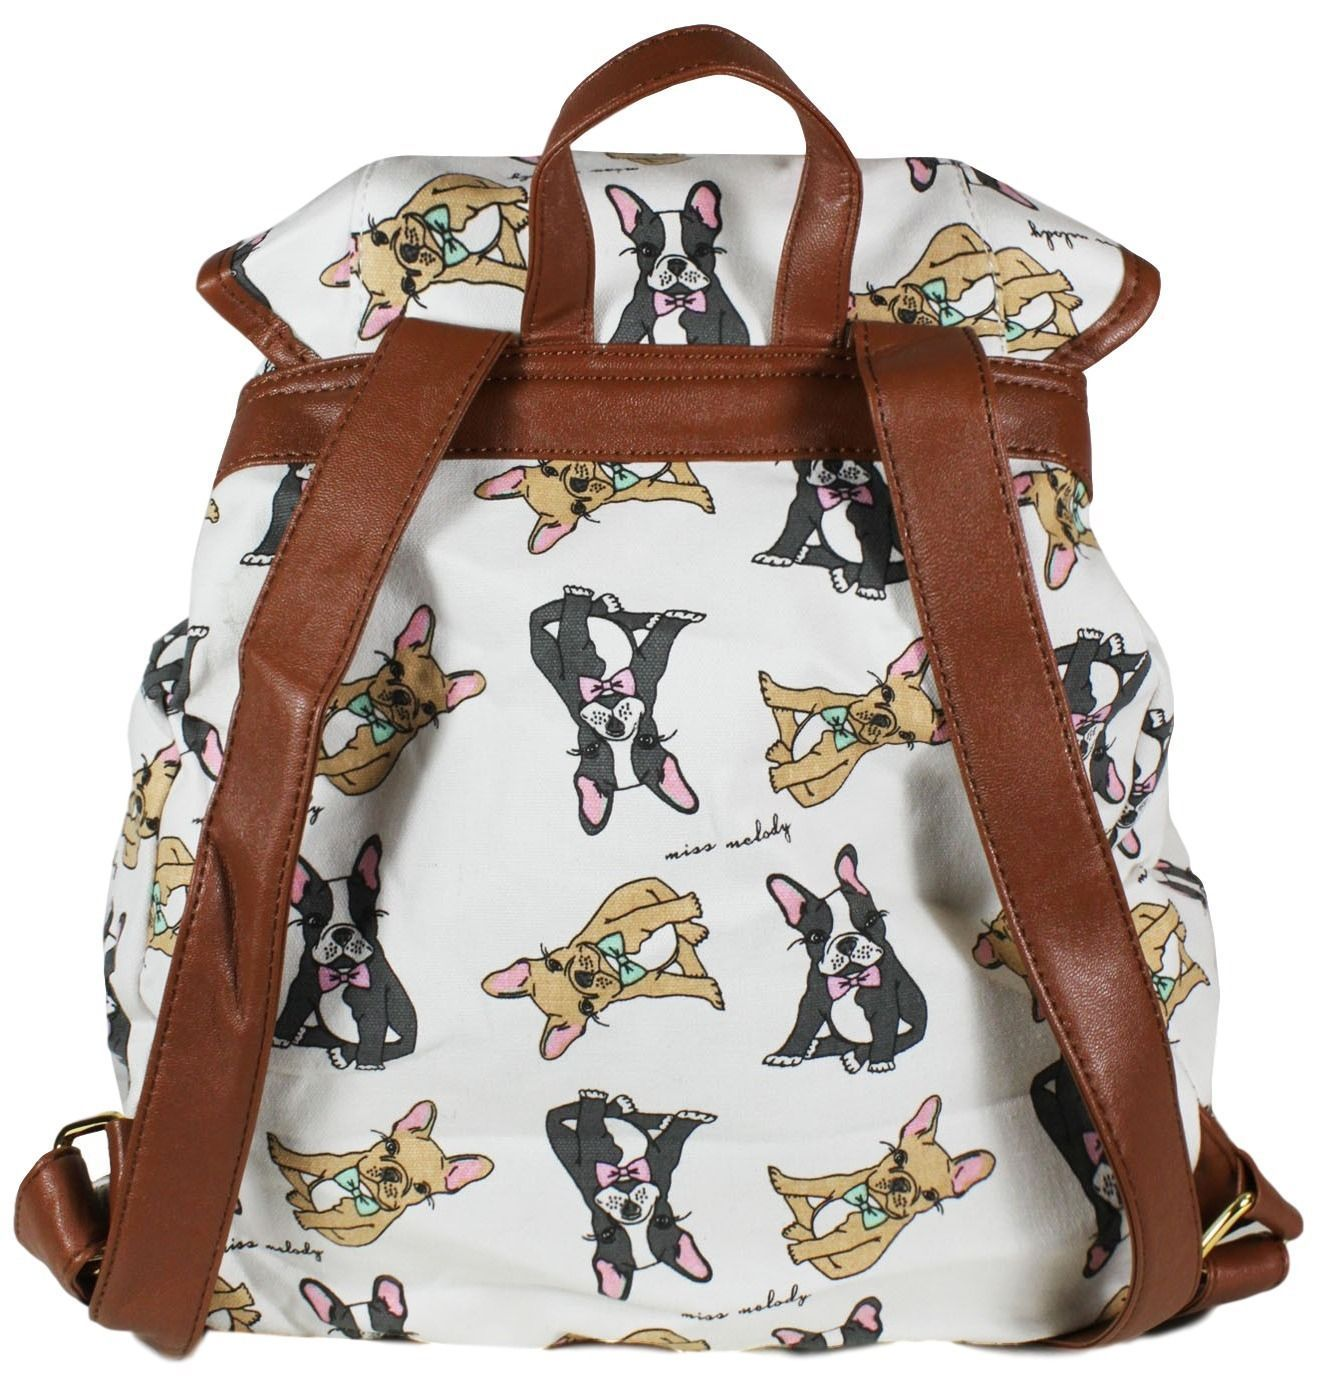 A Cream Backpack with a French Bulldog Print, Cute Dog